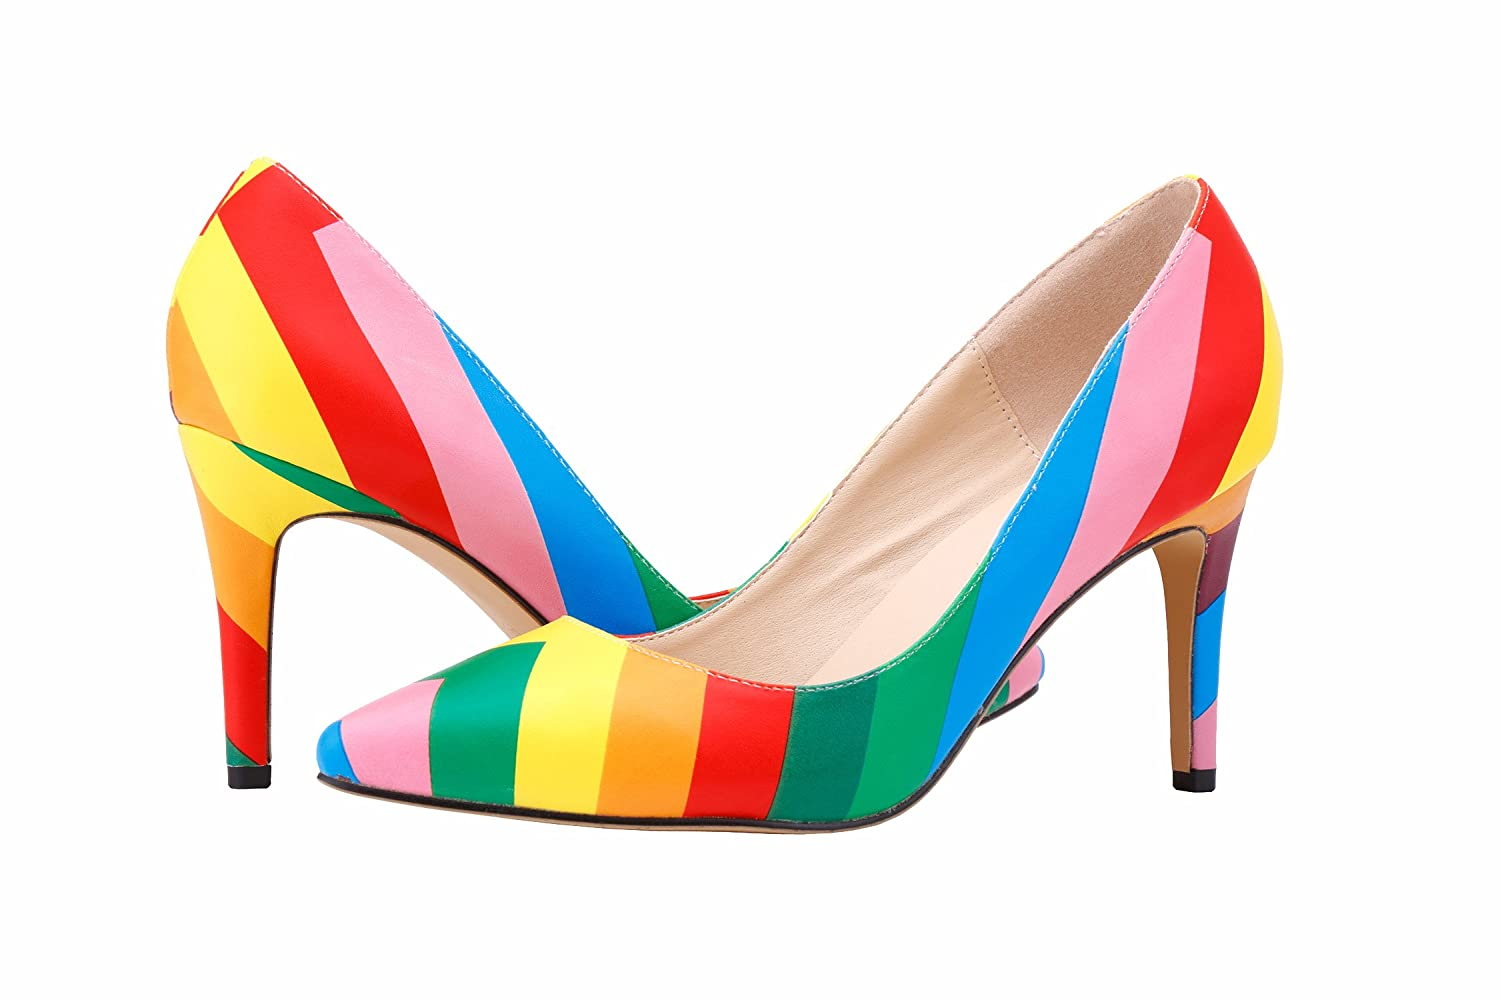 YAOYUE Rainbow Color Pointed Toe Mid Kitten Heels Dress Court Shoes Wedding  Office Shoes PU Upper For Women Laydies: Amazon.co.uk: Shoes & Bags